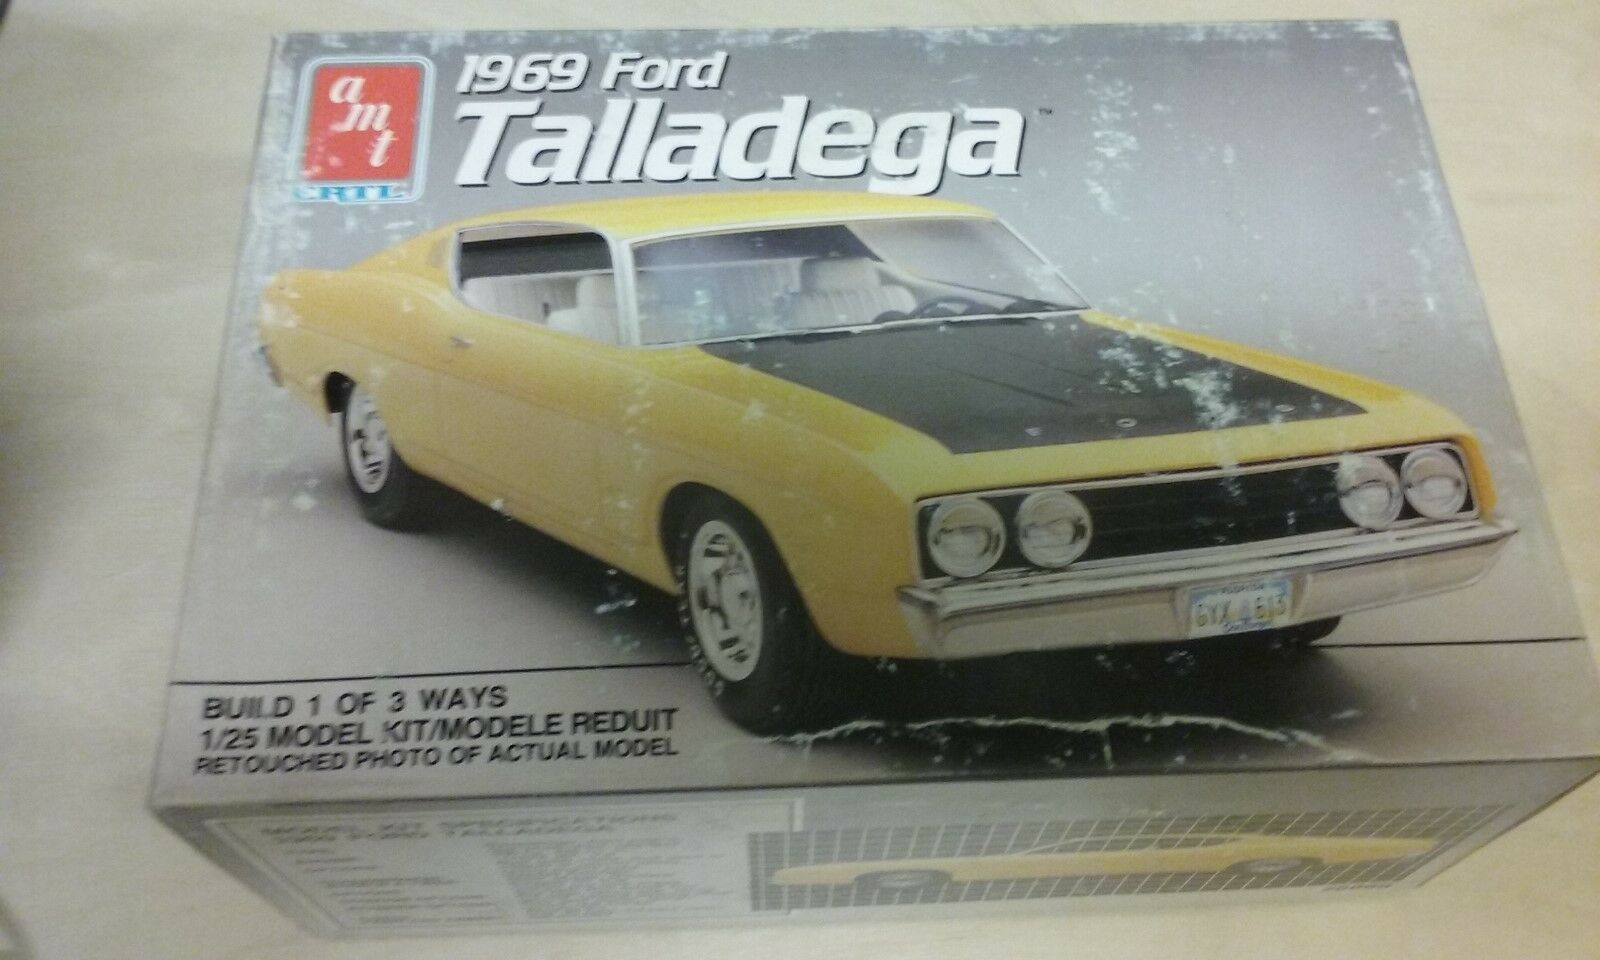 AMT 1969 Ford sizedega Car Model Kit OPENED ( M-8)